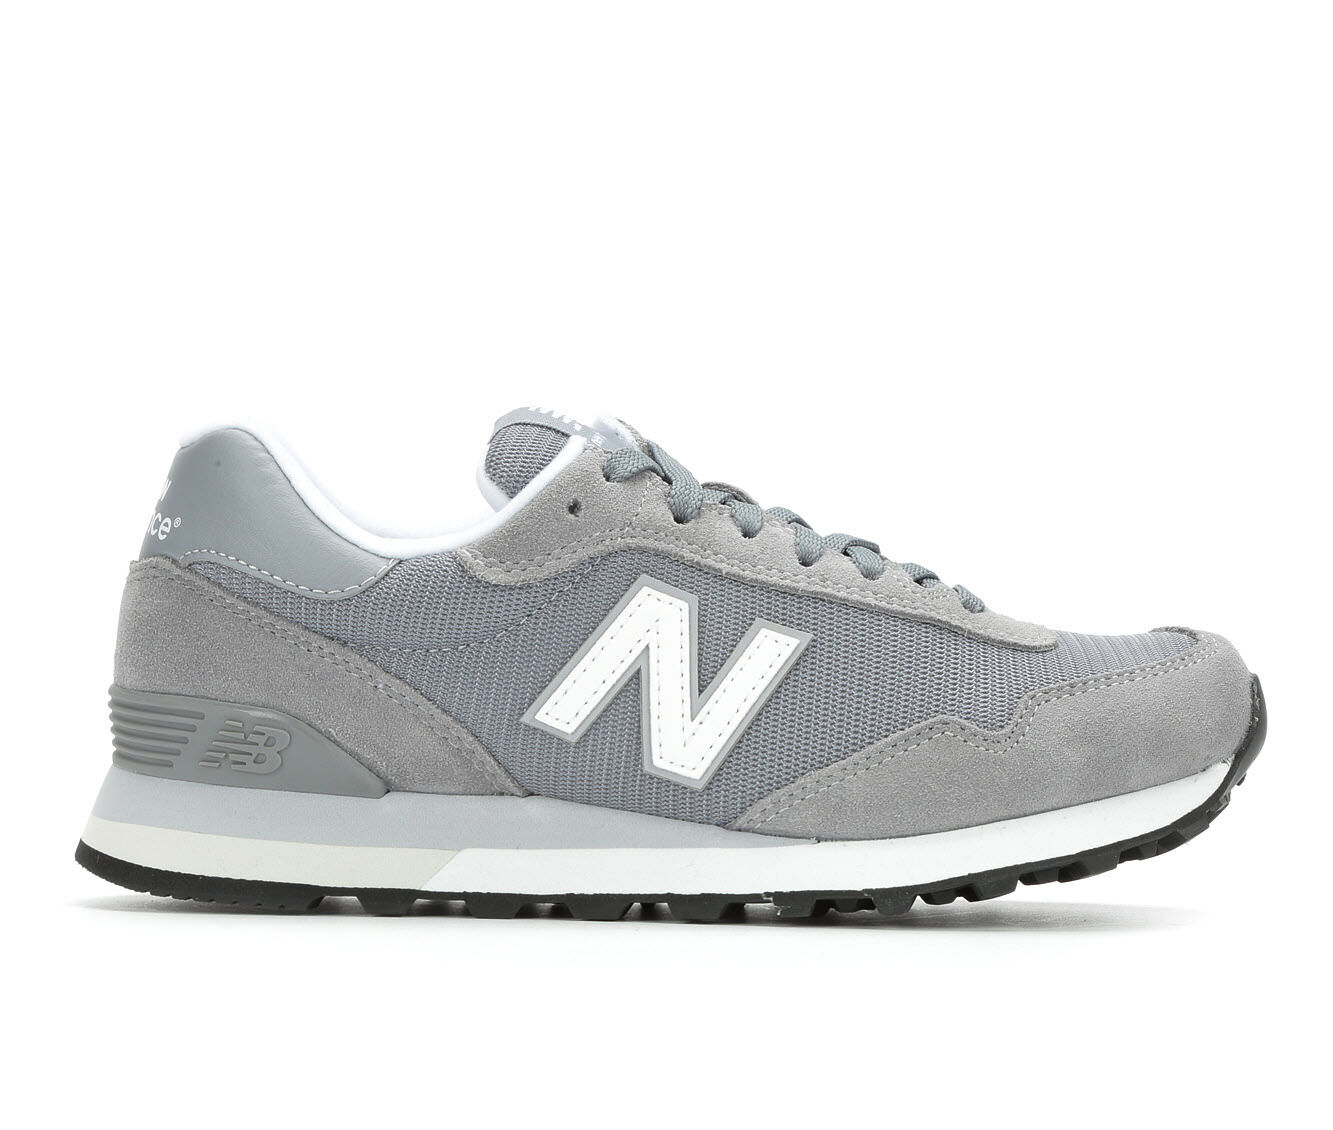 choose cheapest Women's New Balance WL515 Retro Sneakers Grey/Steel/Wht